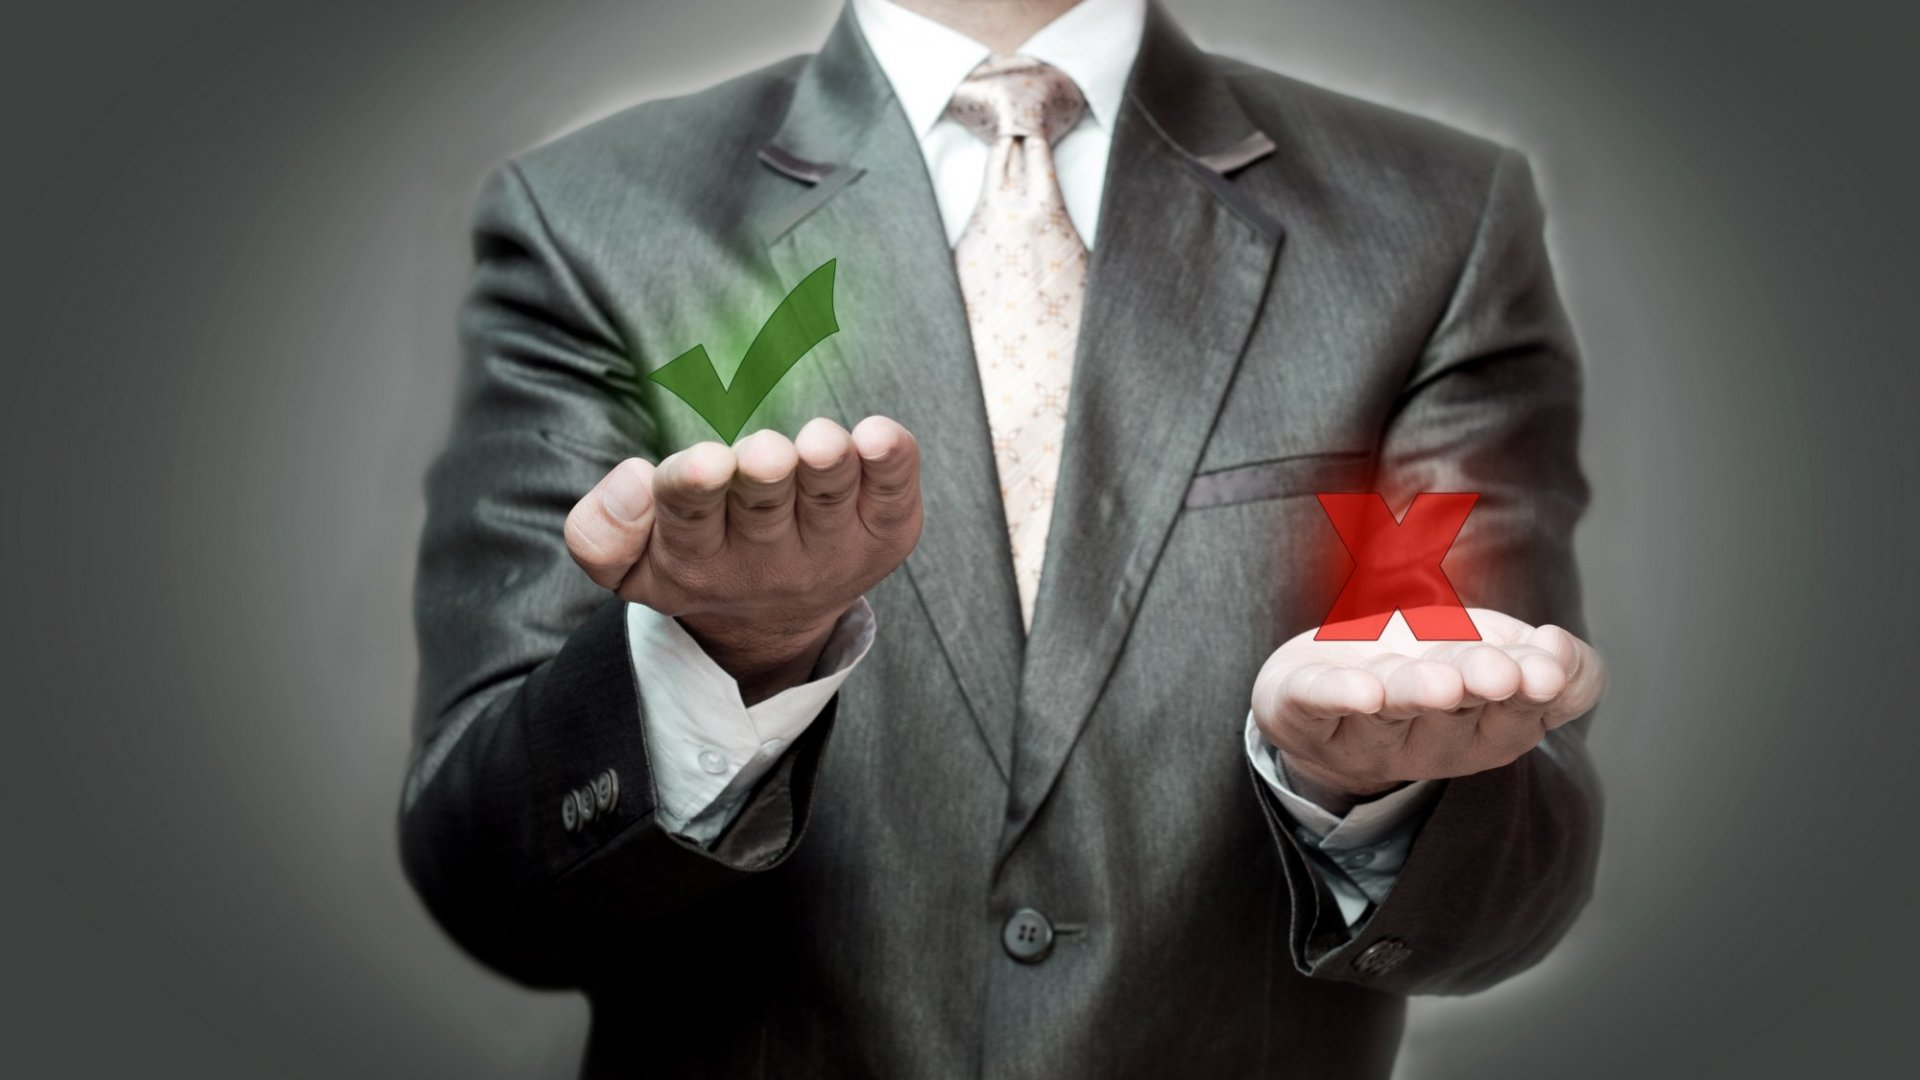 Are You In or Out? 4 Factors for Considering an Entrepreneurial Opportunity